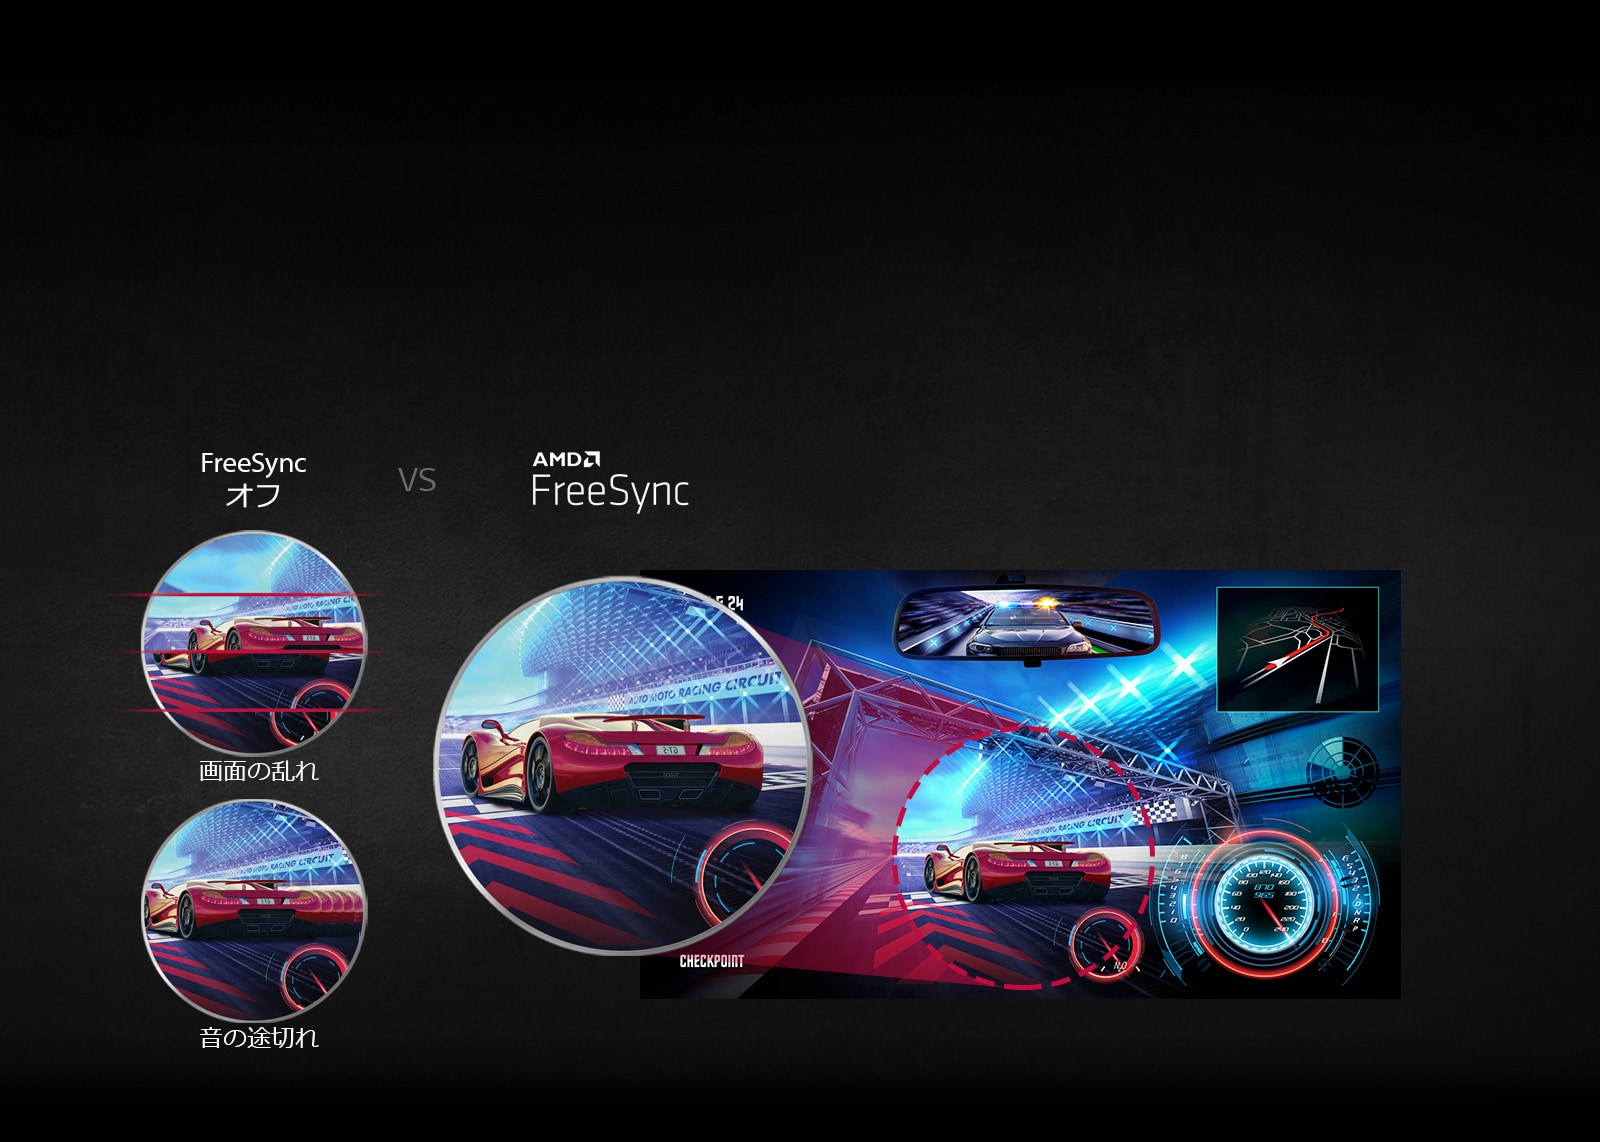 Clearer, smoother images with AMD FreeSync ™